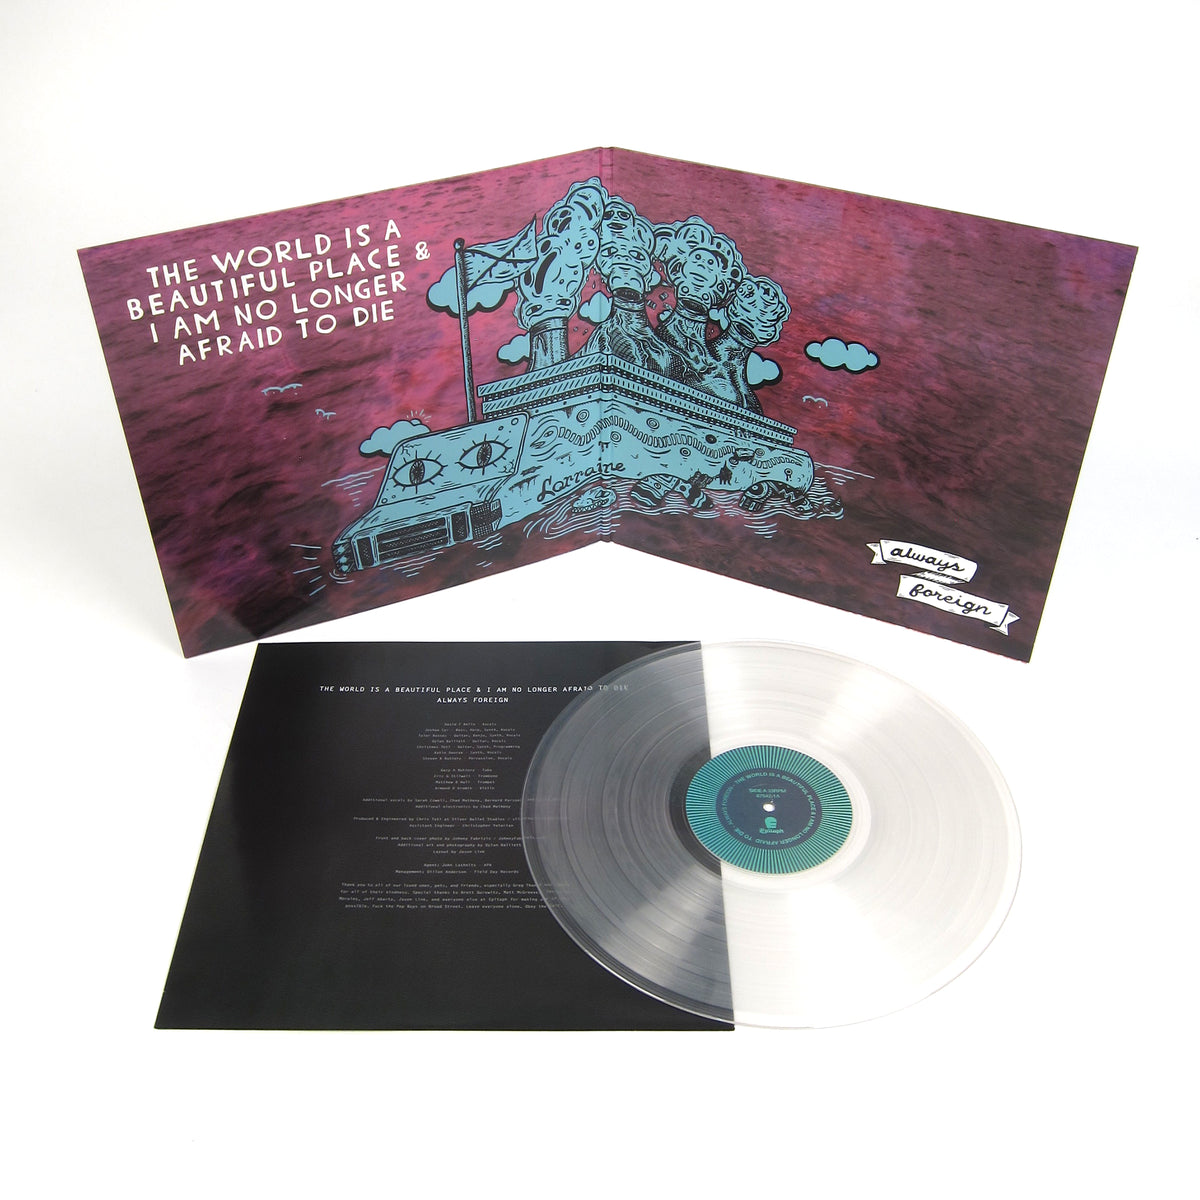 The World Is A Beautiful Place & I Am No Longer Afraid To Die: Always Foreign (Indie Exclusive Colored Vinyl) Vinyl LP